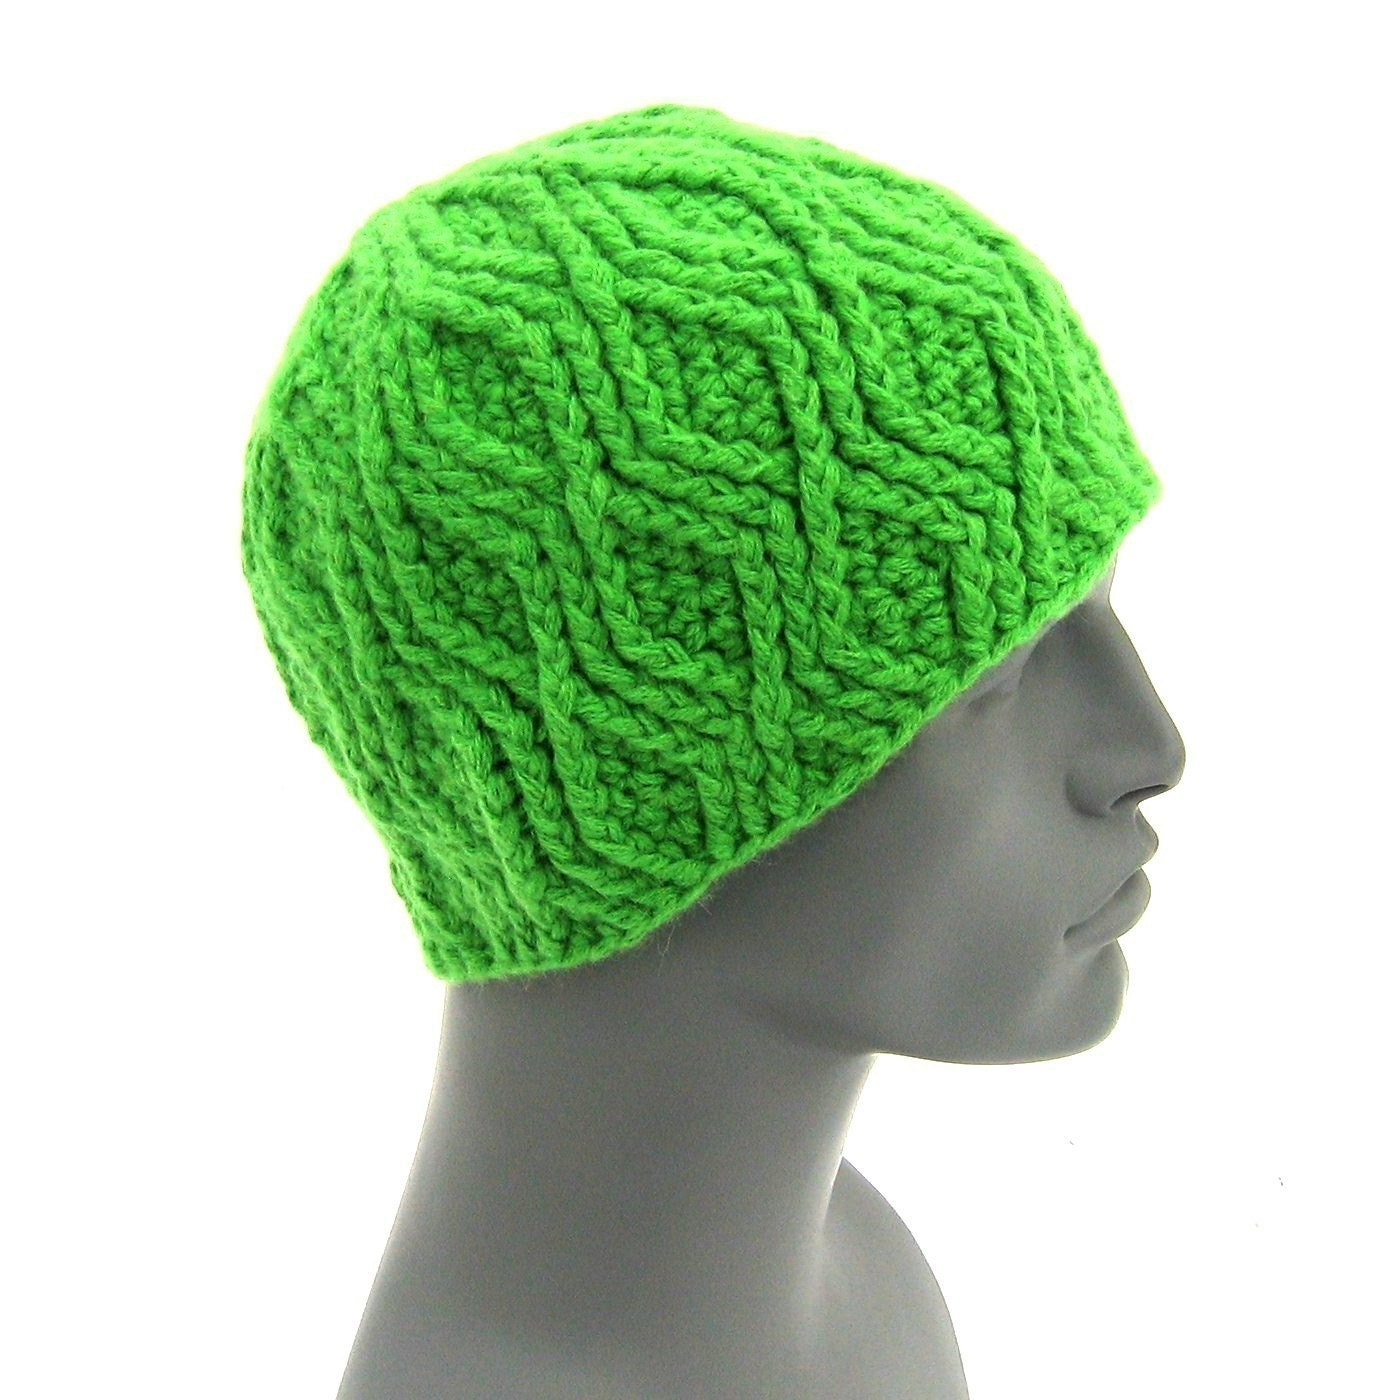 The Nested Diamond Beanie - CROCHET PATTERN